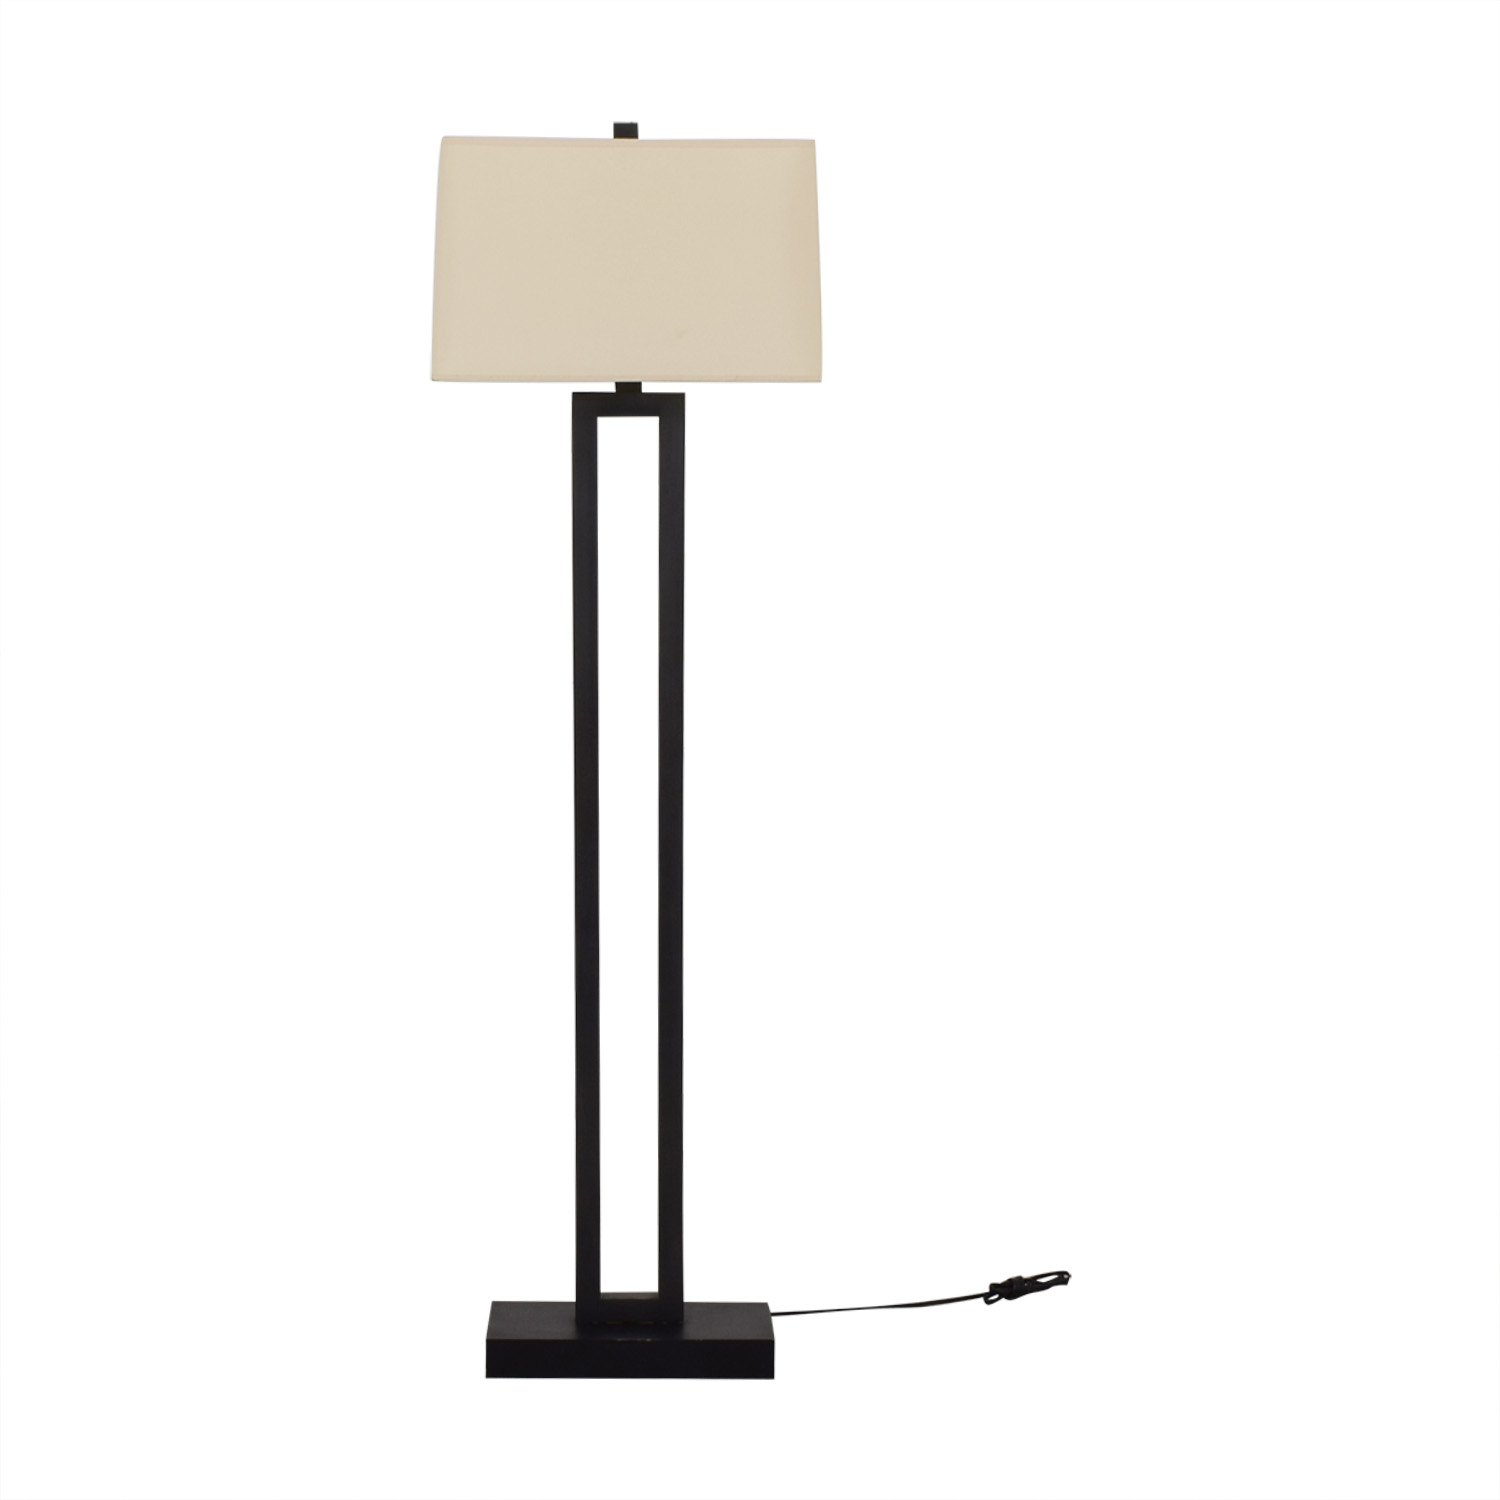 shop Crate & Barrel Duncan Floor Lamp Crate & Barrel Lamps